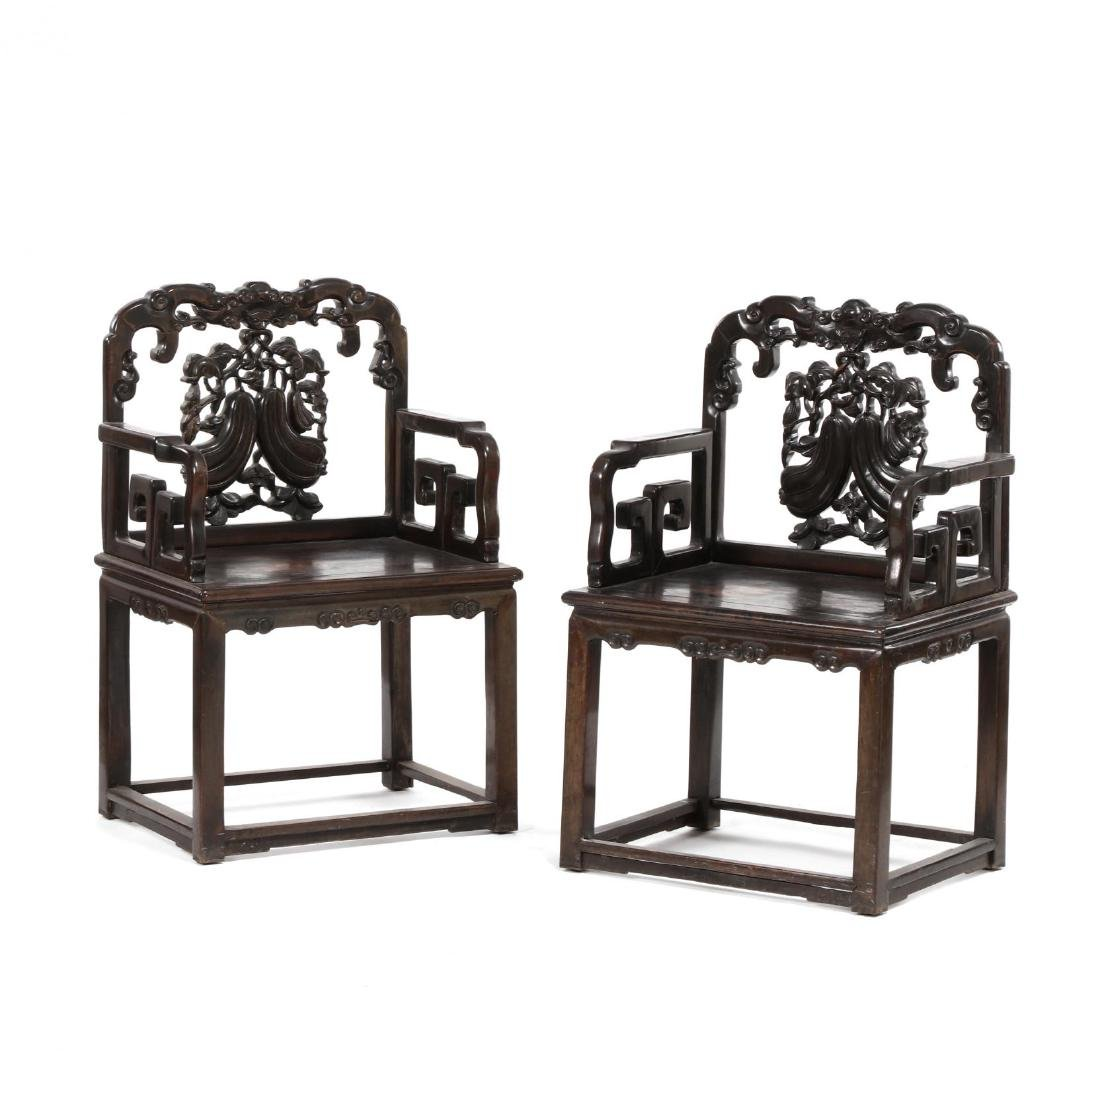 A Pair of Chinese Carved Hardwood Antique Arm Chairs